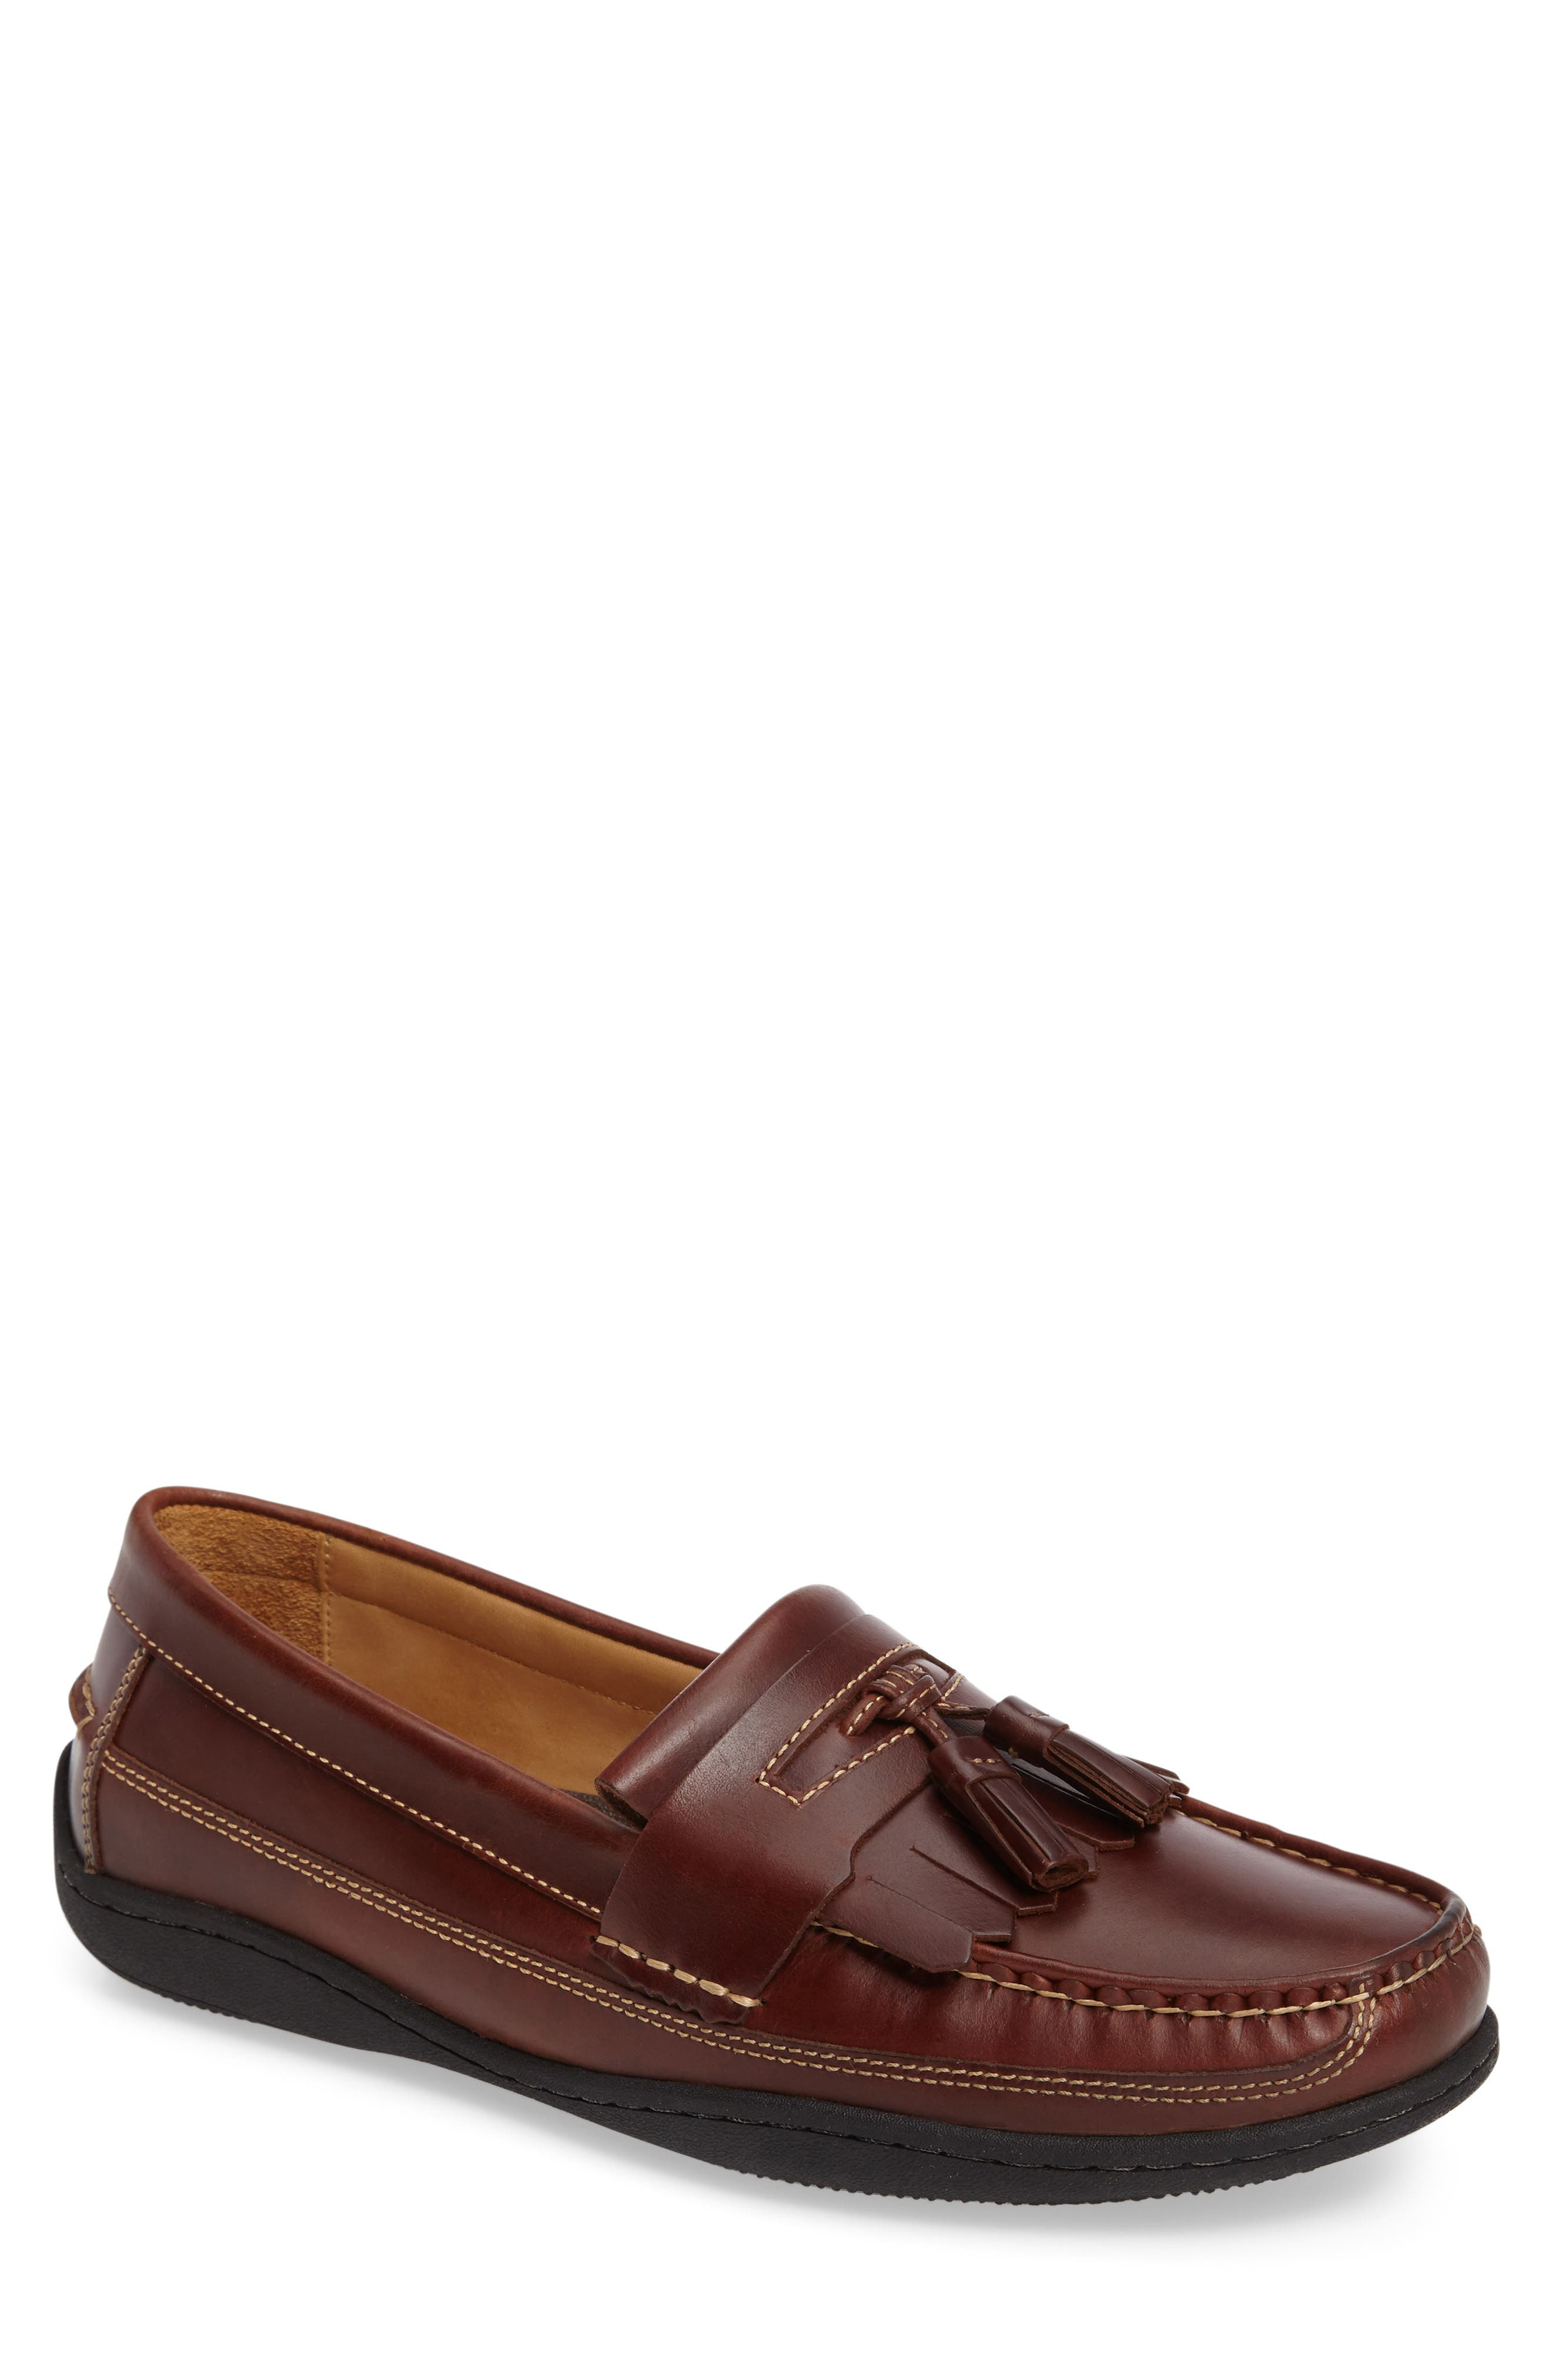 Johnston & Murphy Fowler Kiltie Tassel Loafer (Men)